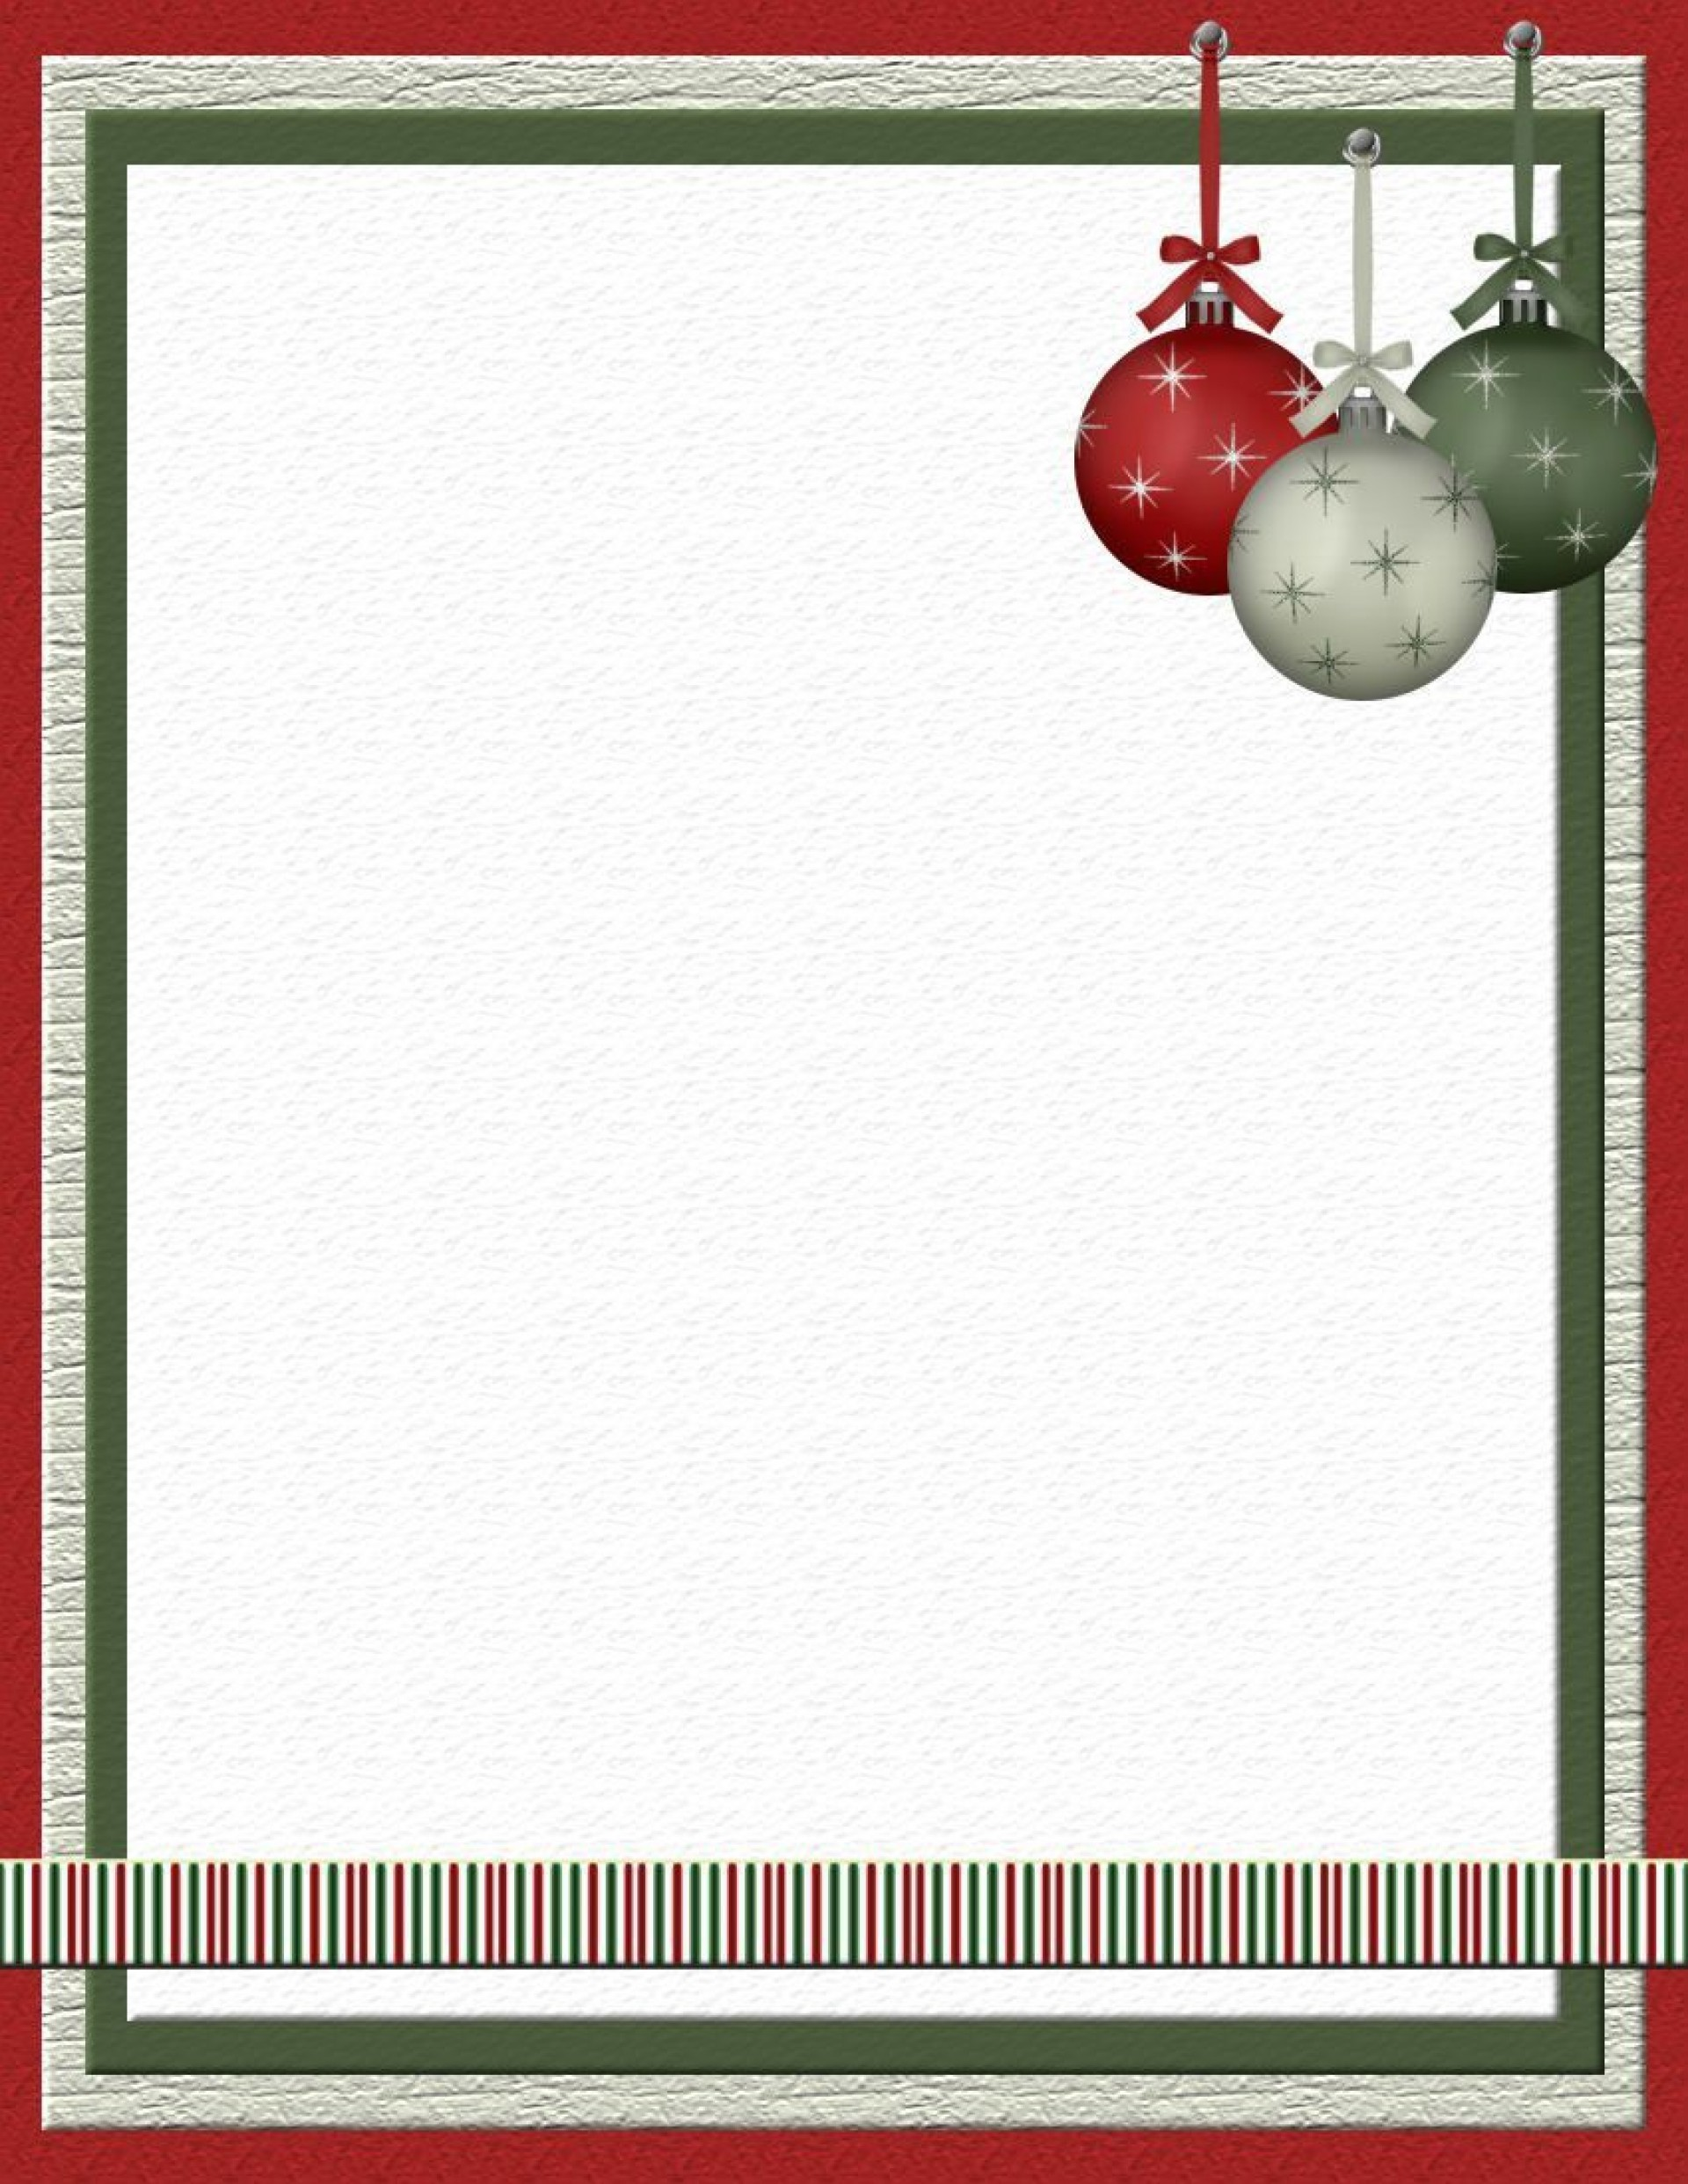 003 Amazing Christma Stationery Template Word Free High Resolution  Religiou For Downloadable1920